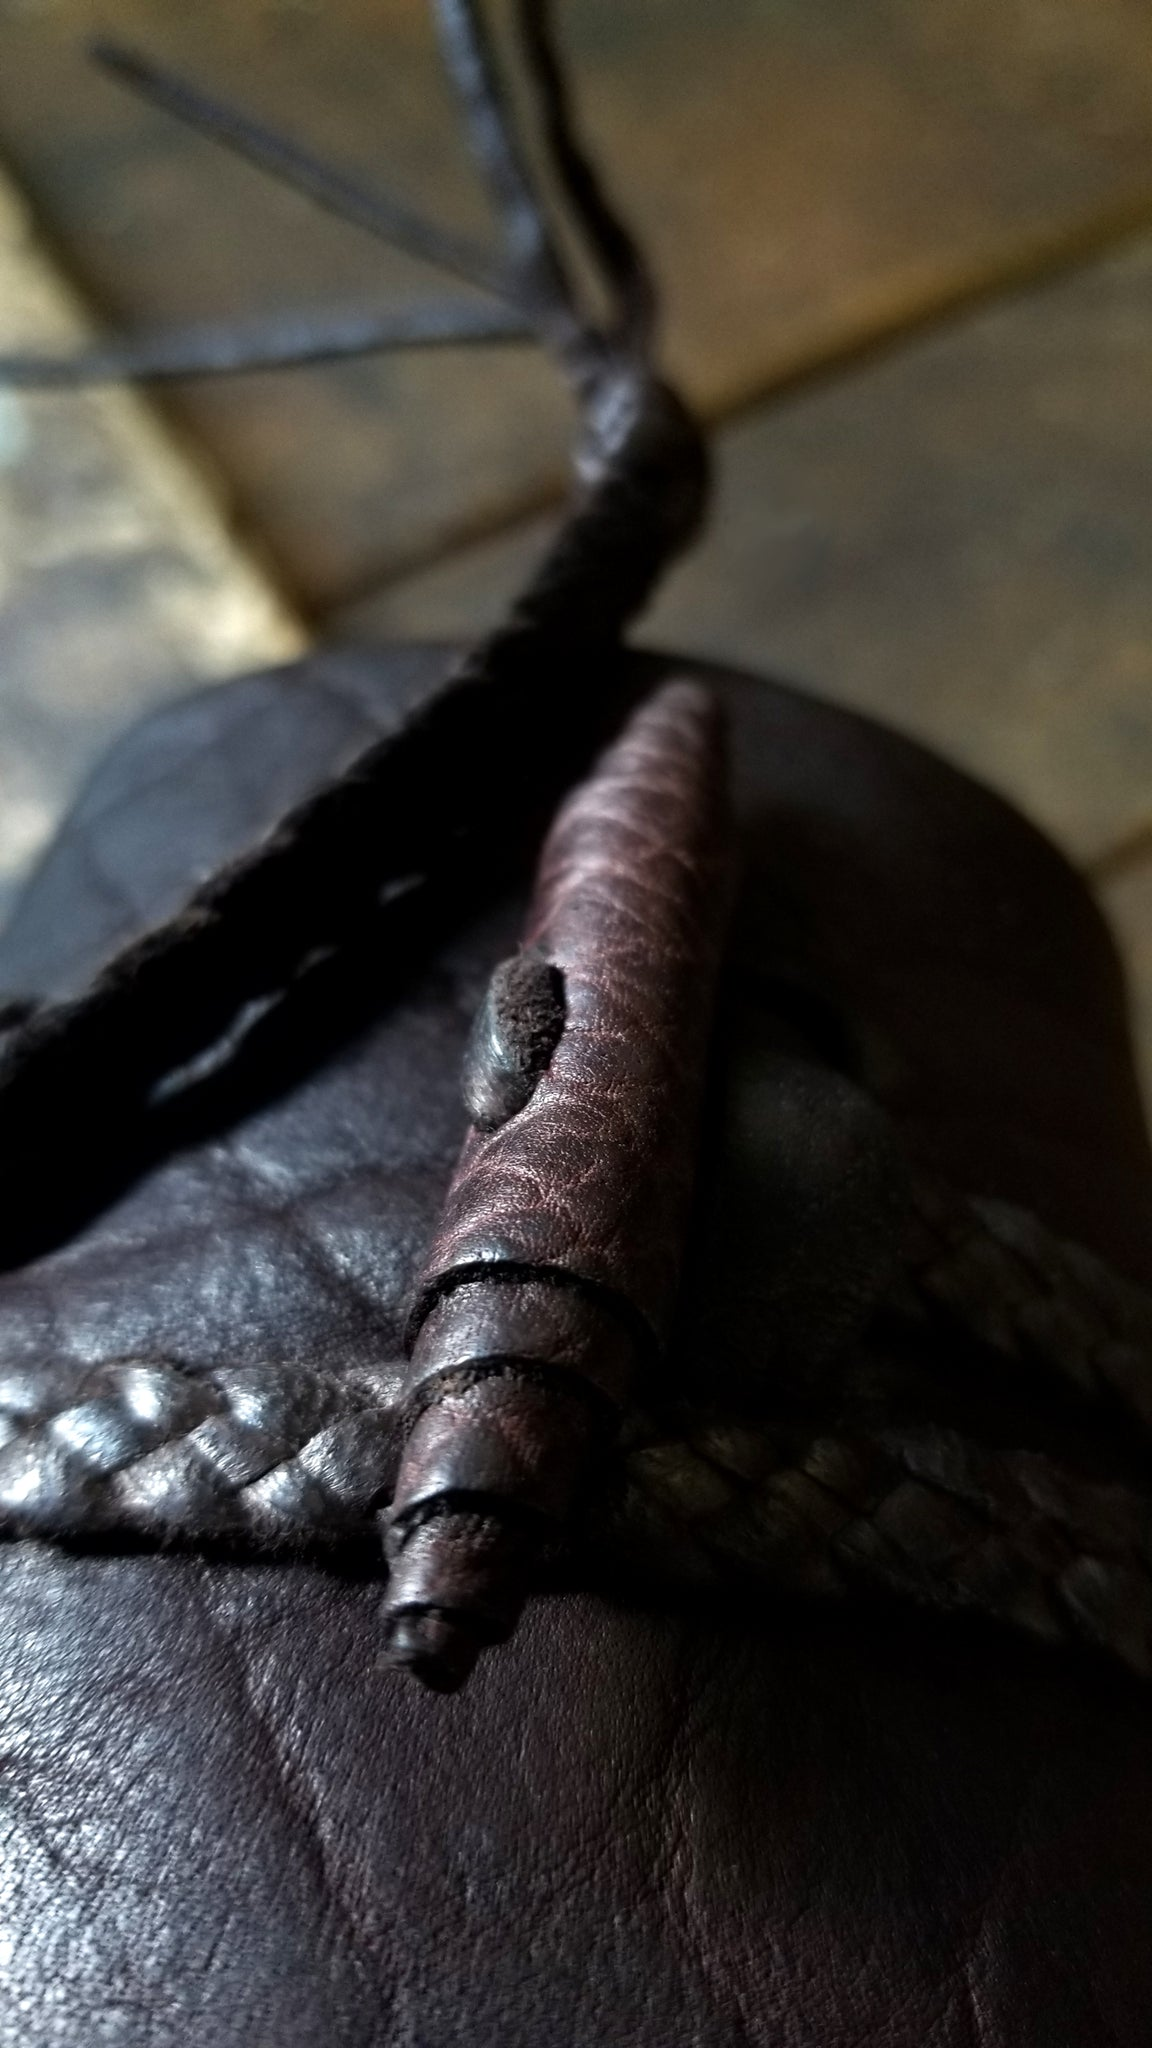 handmade bison leather button on busajja leather wrap cuff, jason momoa bohemian style men's leather cuff